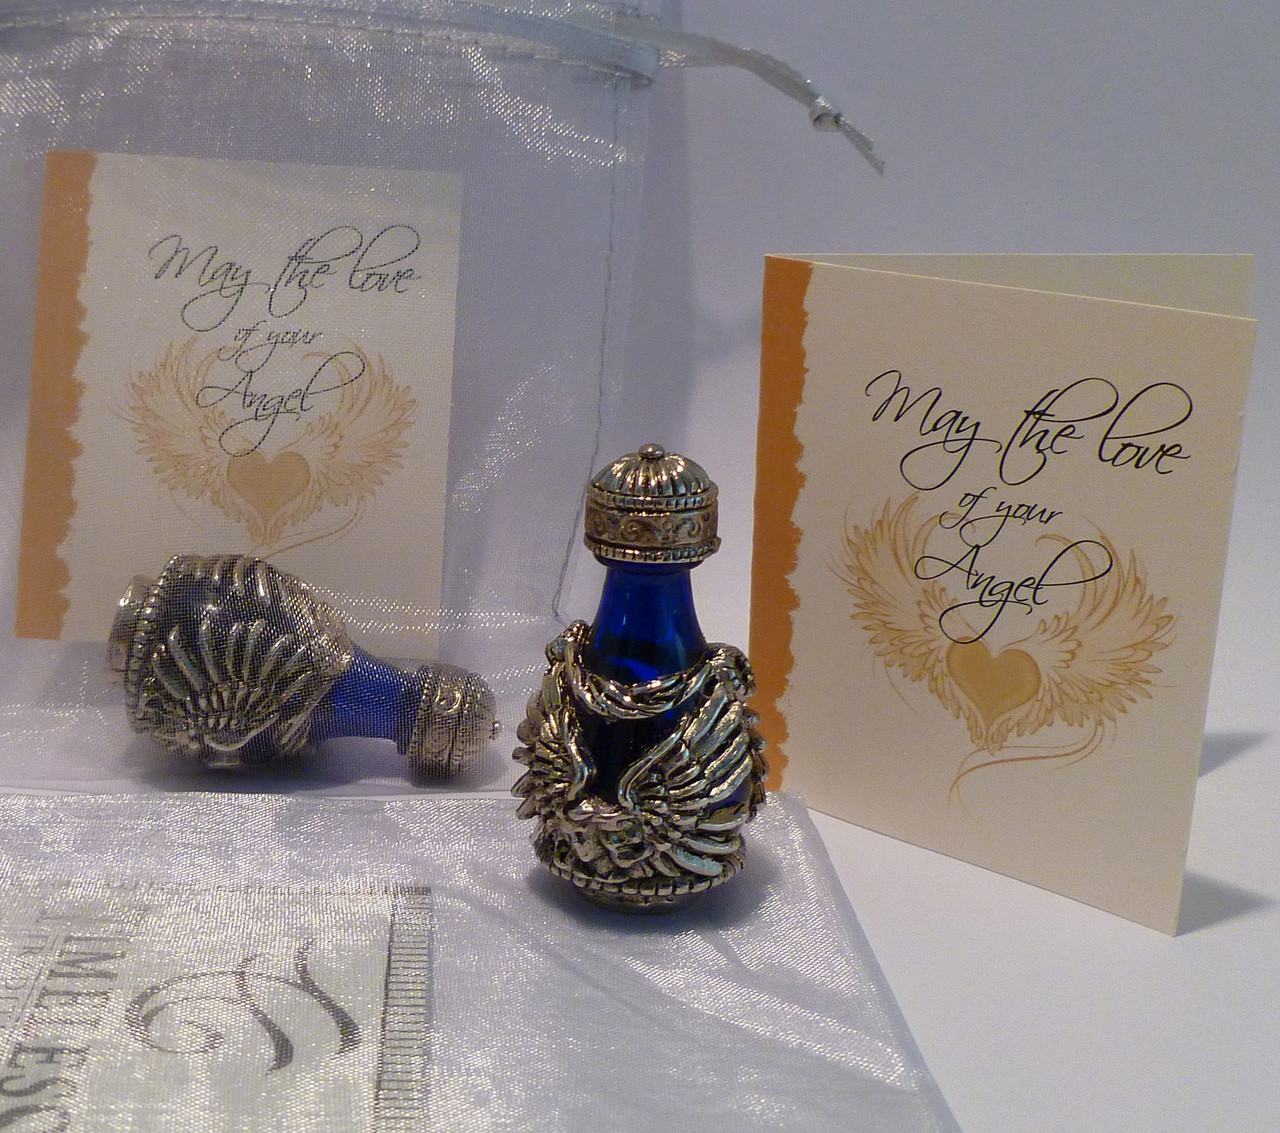 Silver Angel with Blue Glass - with Angel Card - included with this Item